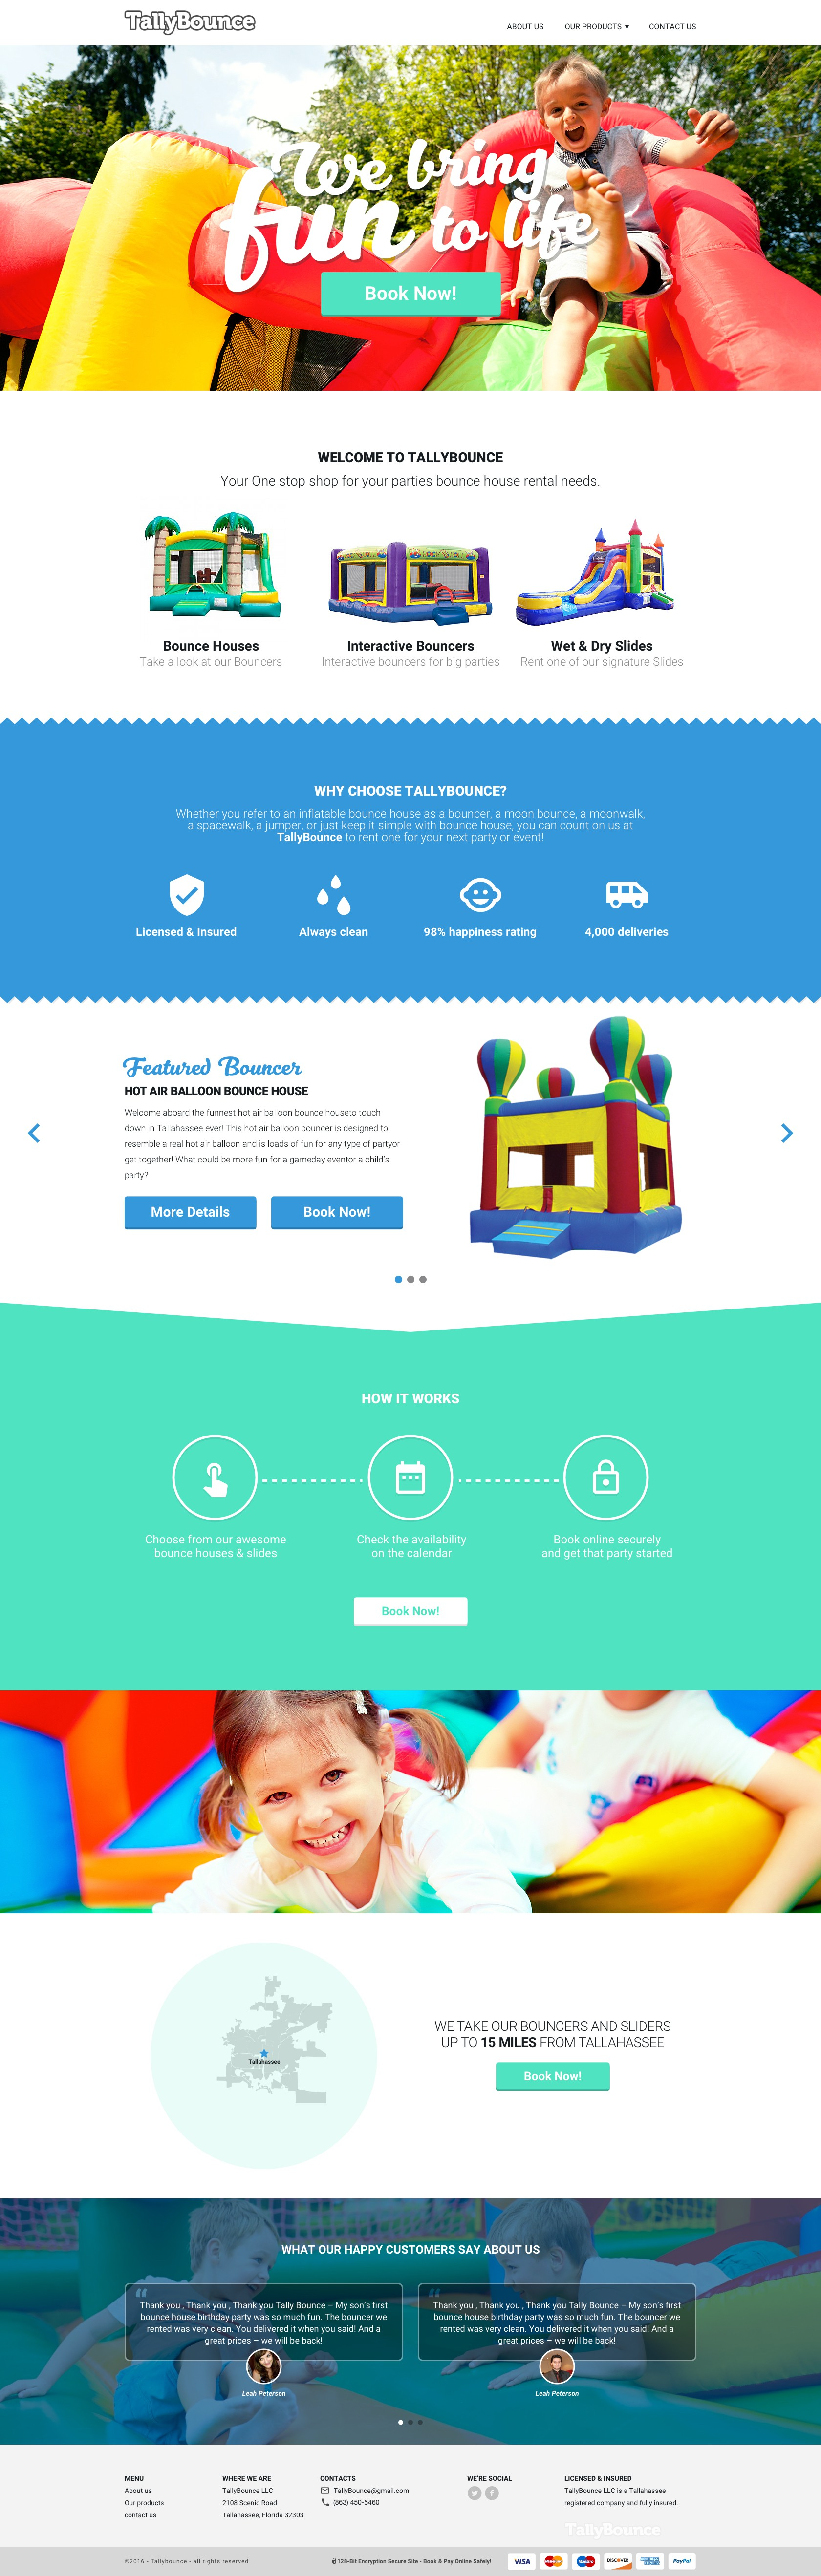 Bounce house business website